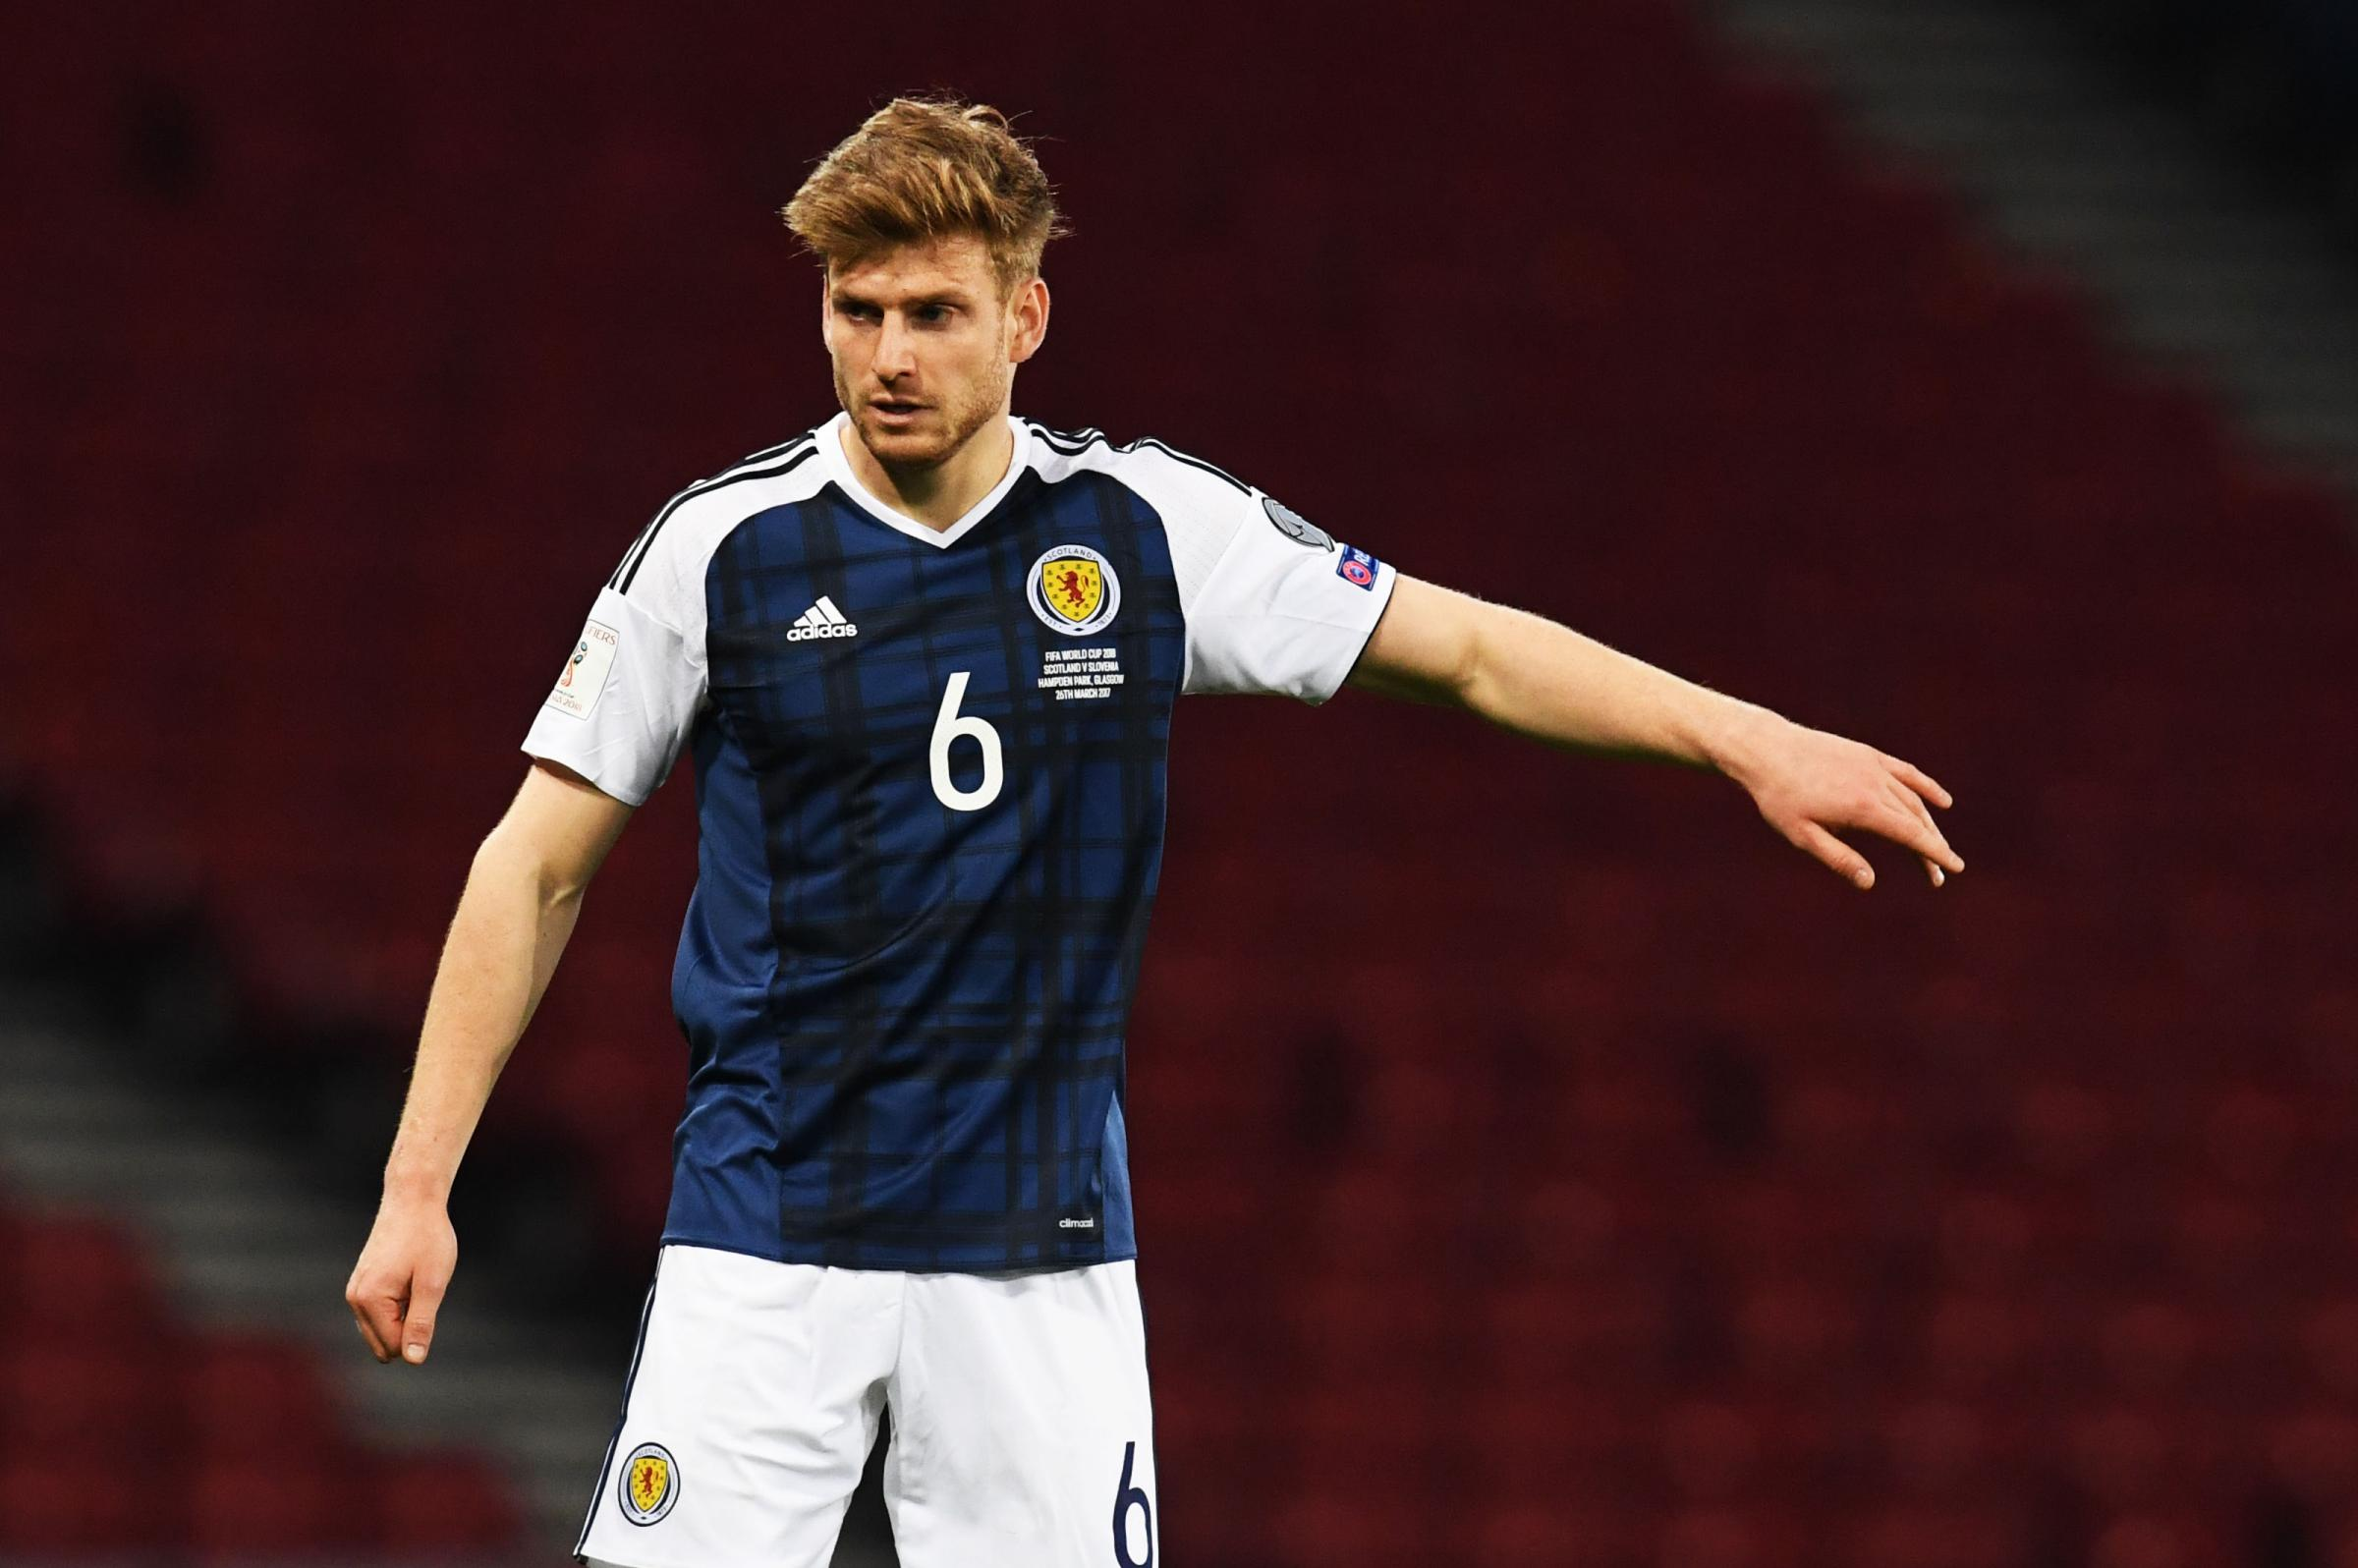 Stuart Armstrong says man-of-the-match performance on Scotland debut is proud moment for the family